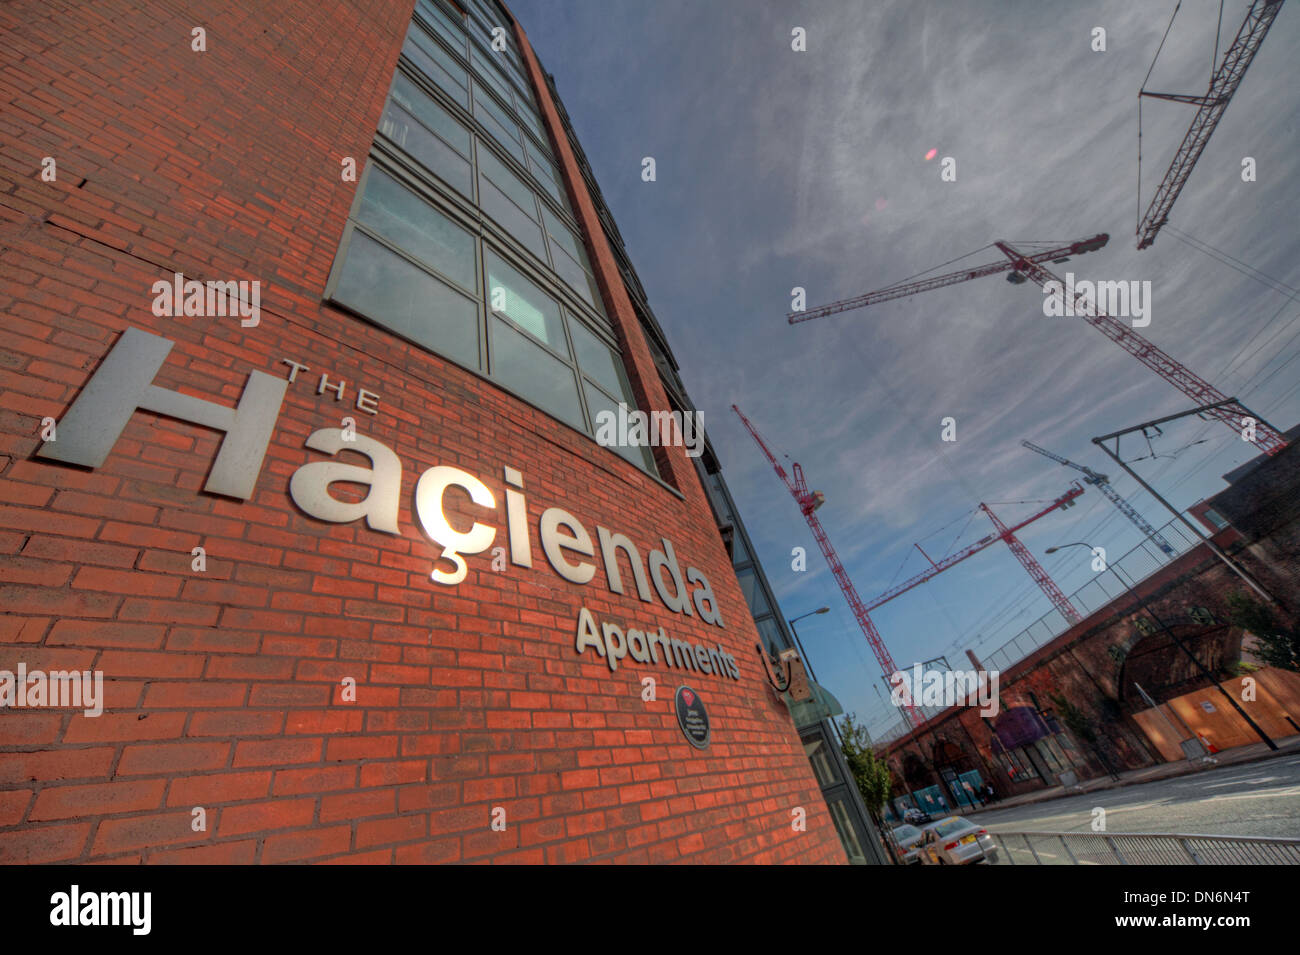 Fac51 Hacienda Apartments, Whitworth St Manchester England UK Stock Photo